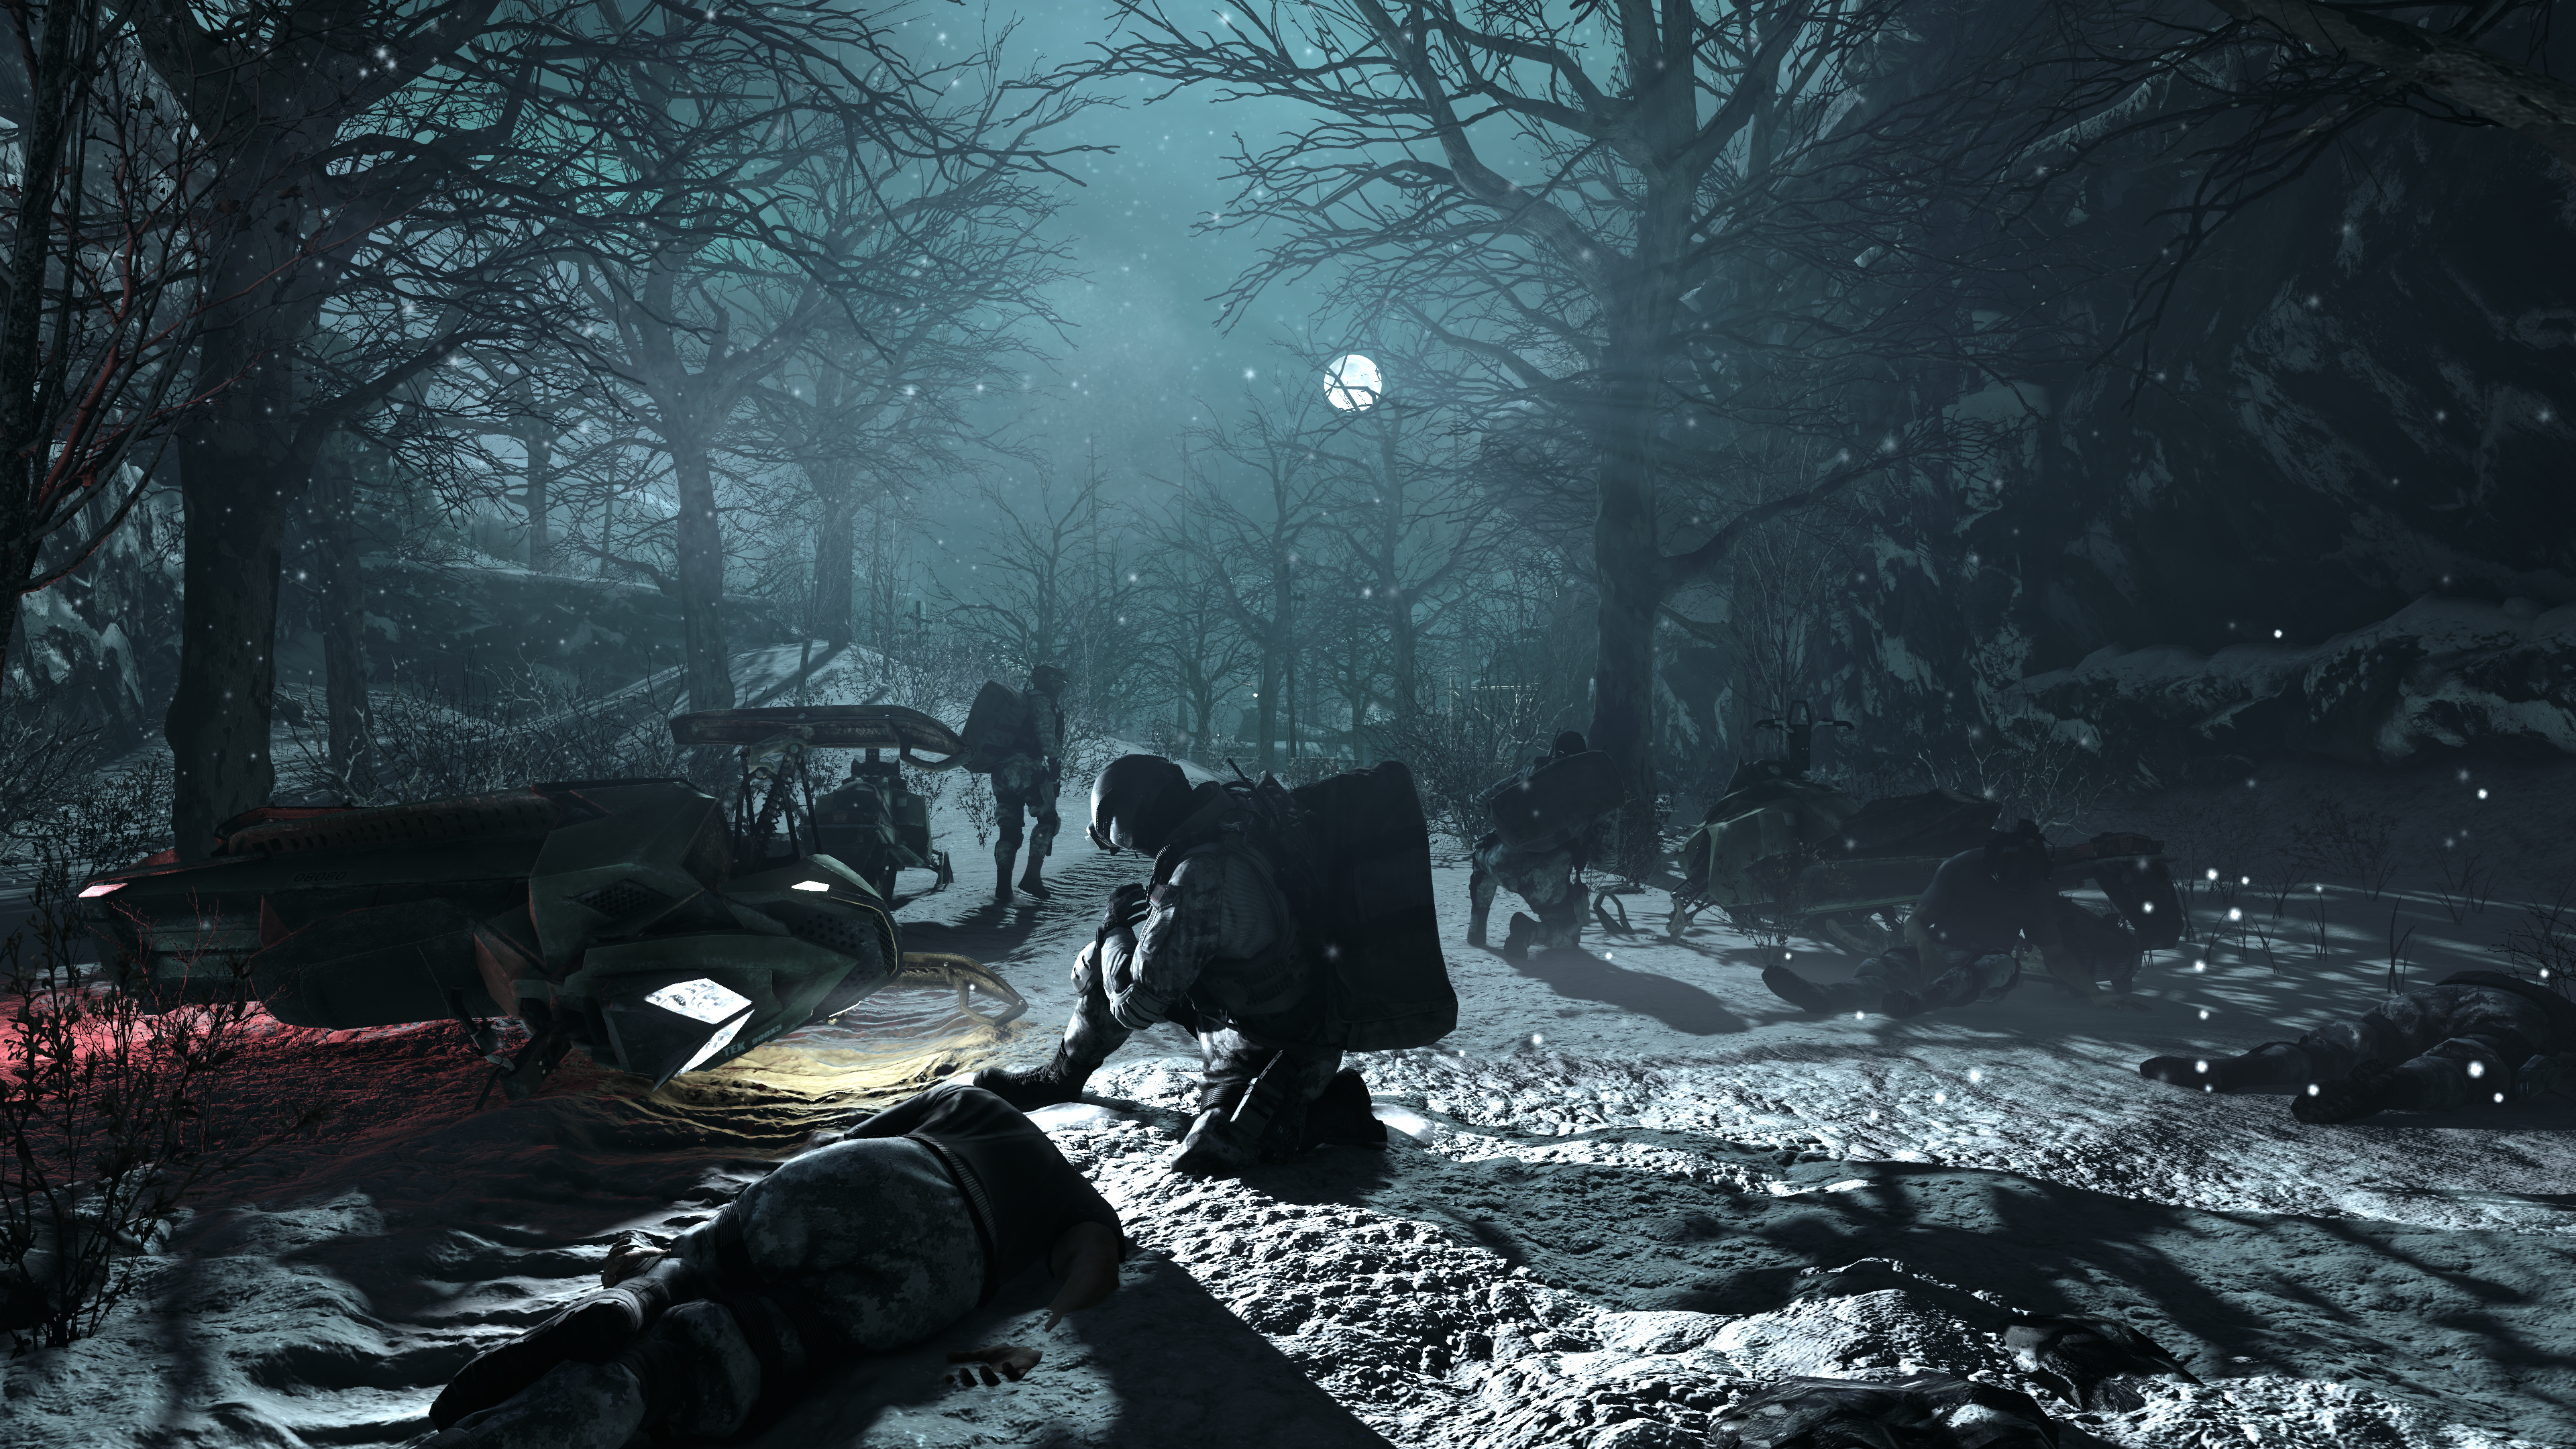 call-of-duty-ghosts-pc-screenshot-3840x2160-007